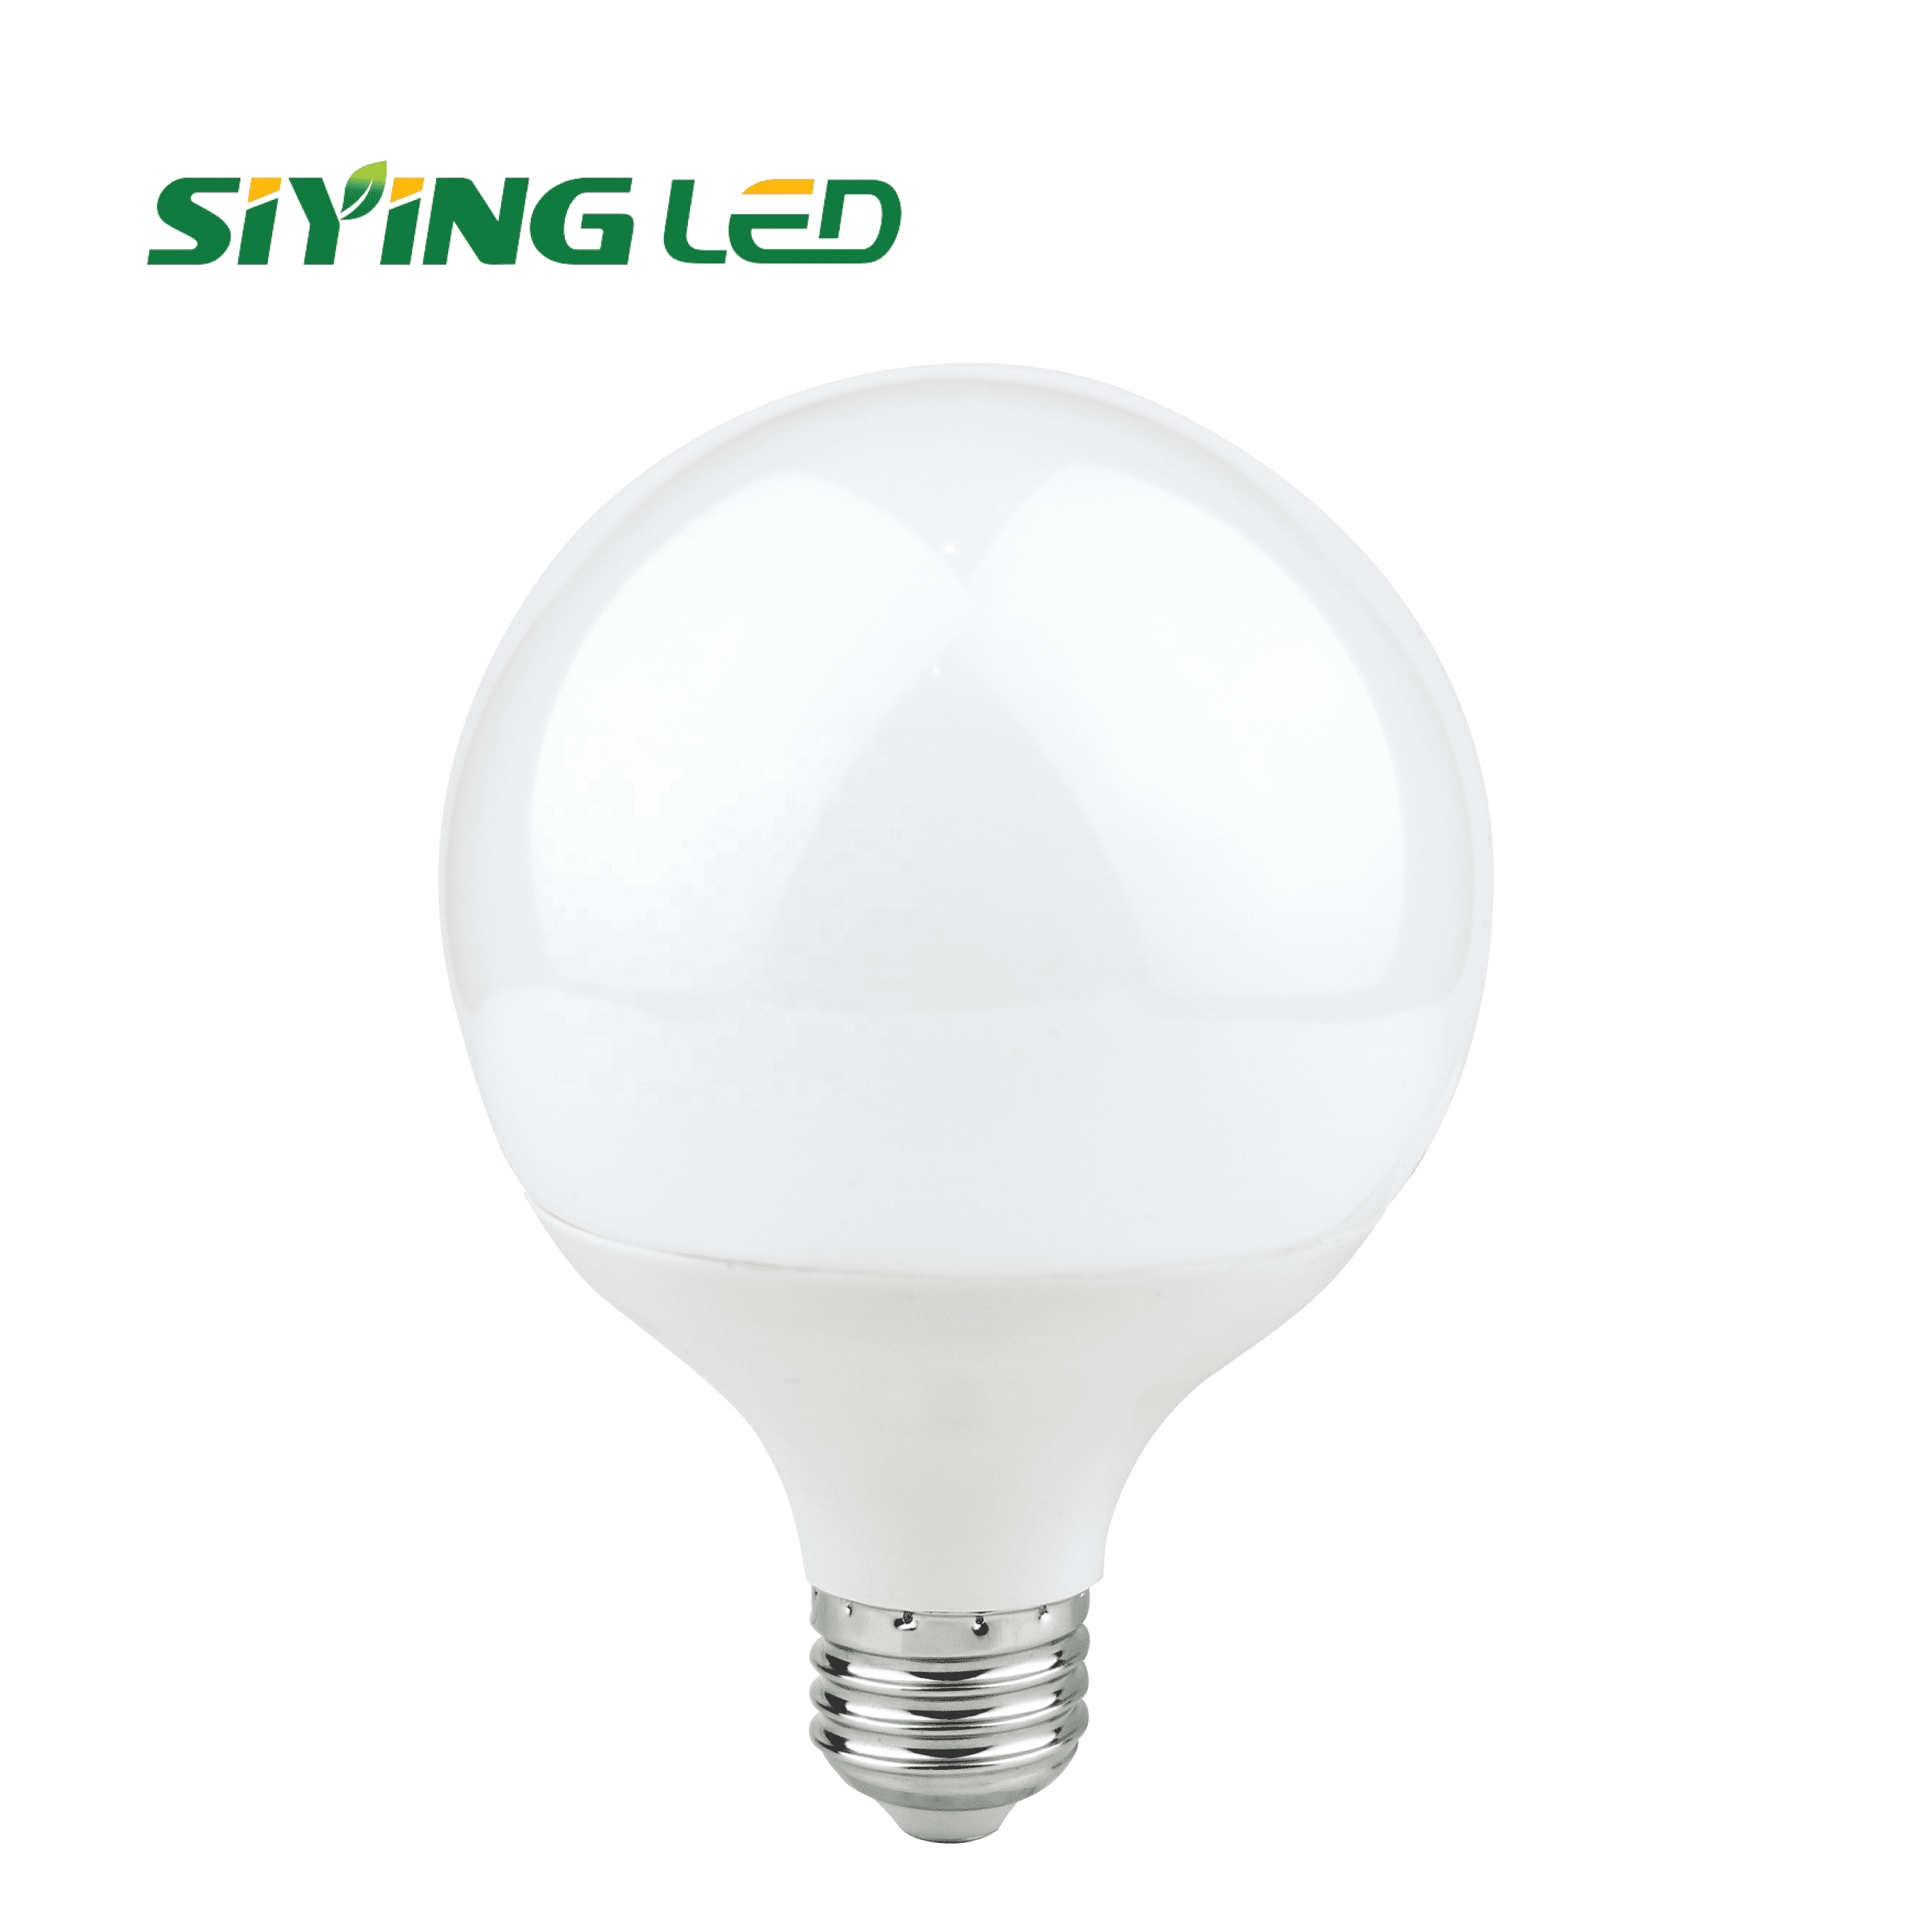 LED globe bulb SY-G026 Featured Image